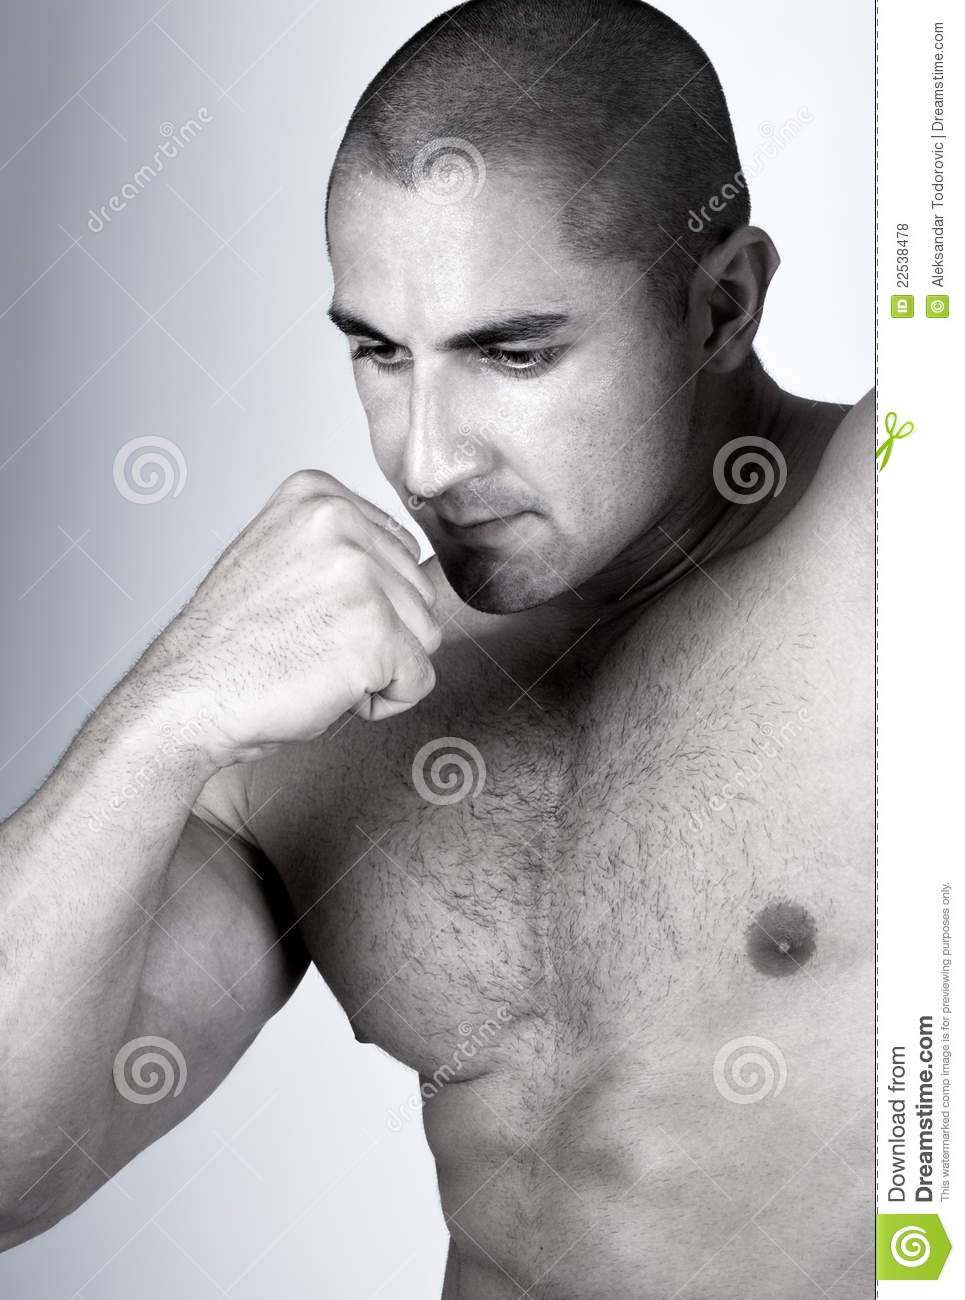 The Perfect Muscular male